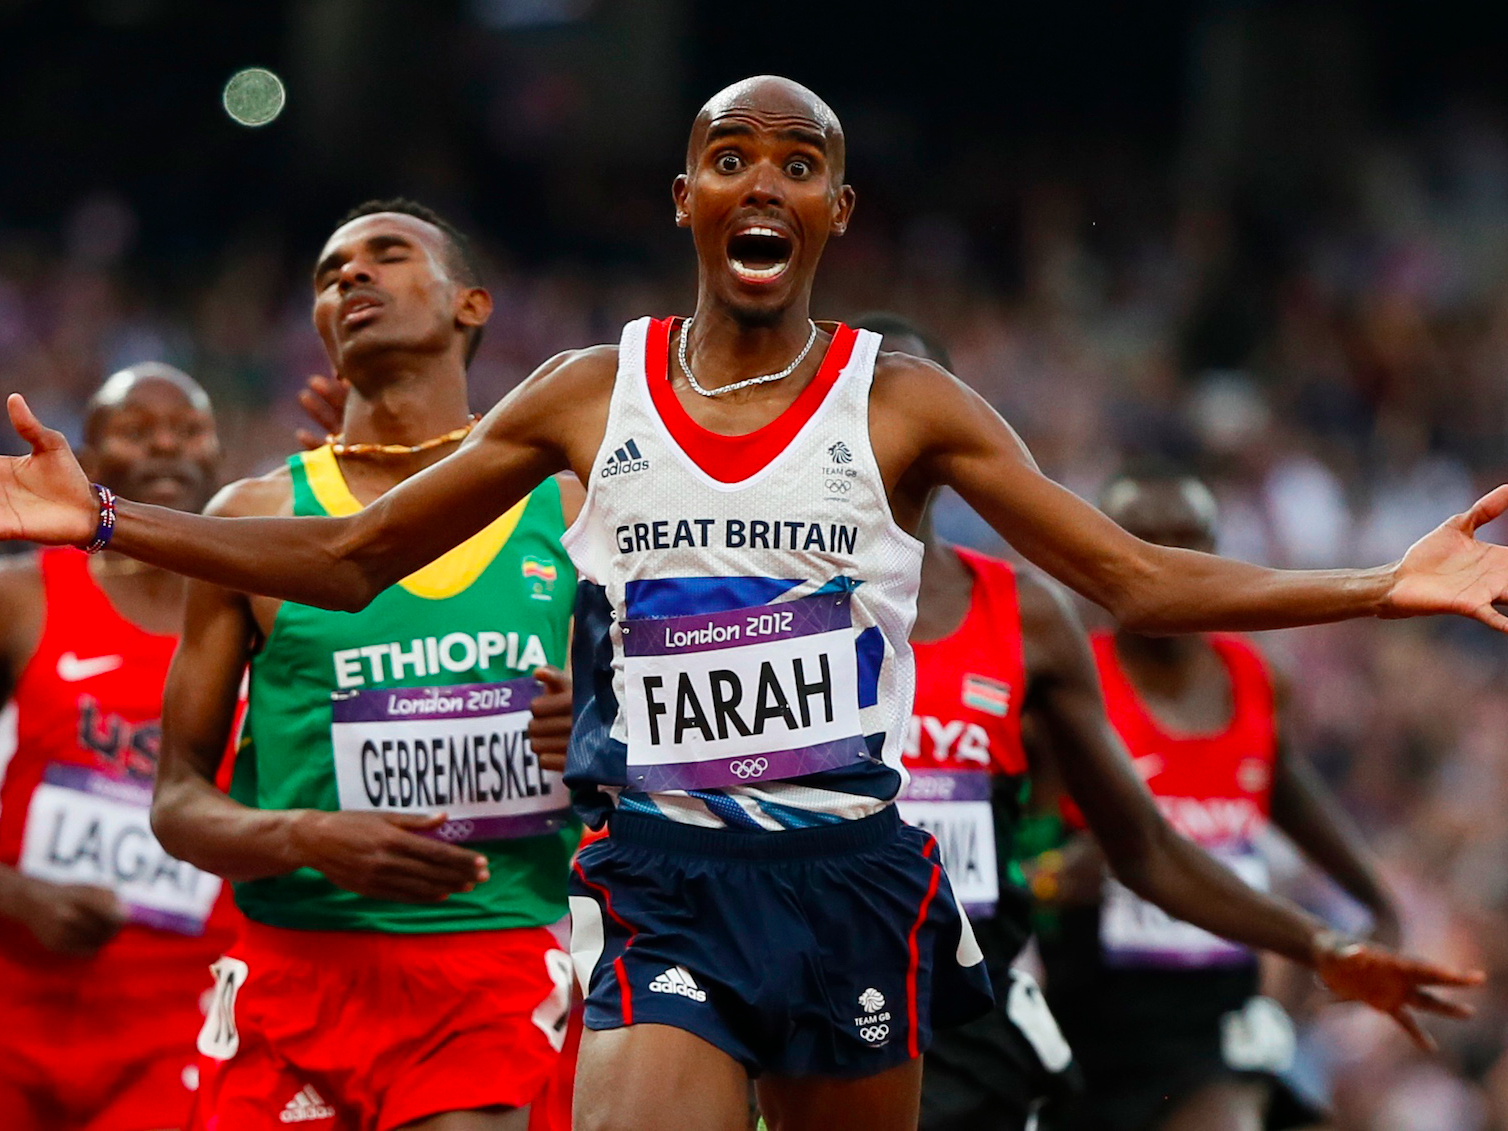 Britain's Mo Farah reacts as he wins the men's 5000m final at the London 2012 Olympic Games at the Olympic Stadium August 11, 2012.